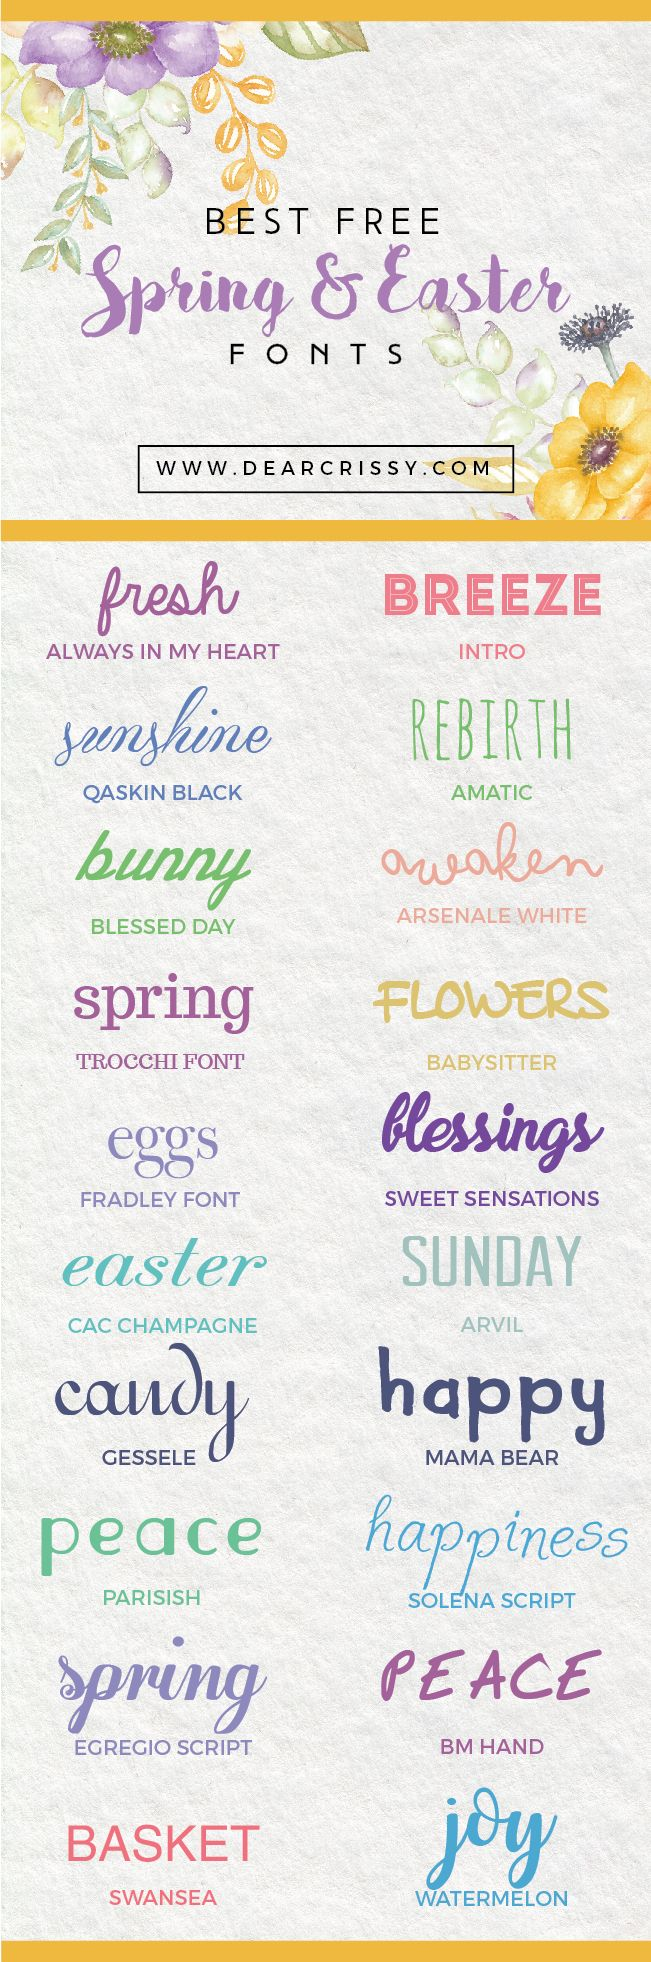 Free illustration g typography font font name free image on - Best Free Easter Fonts Free Spring Fonts